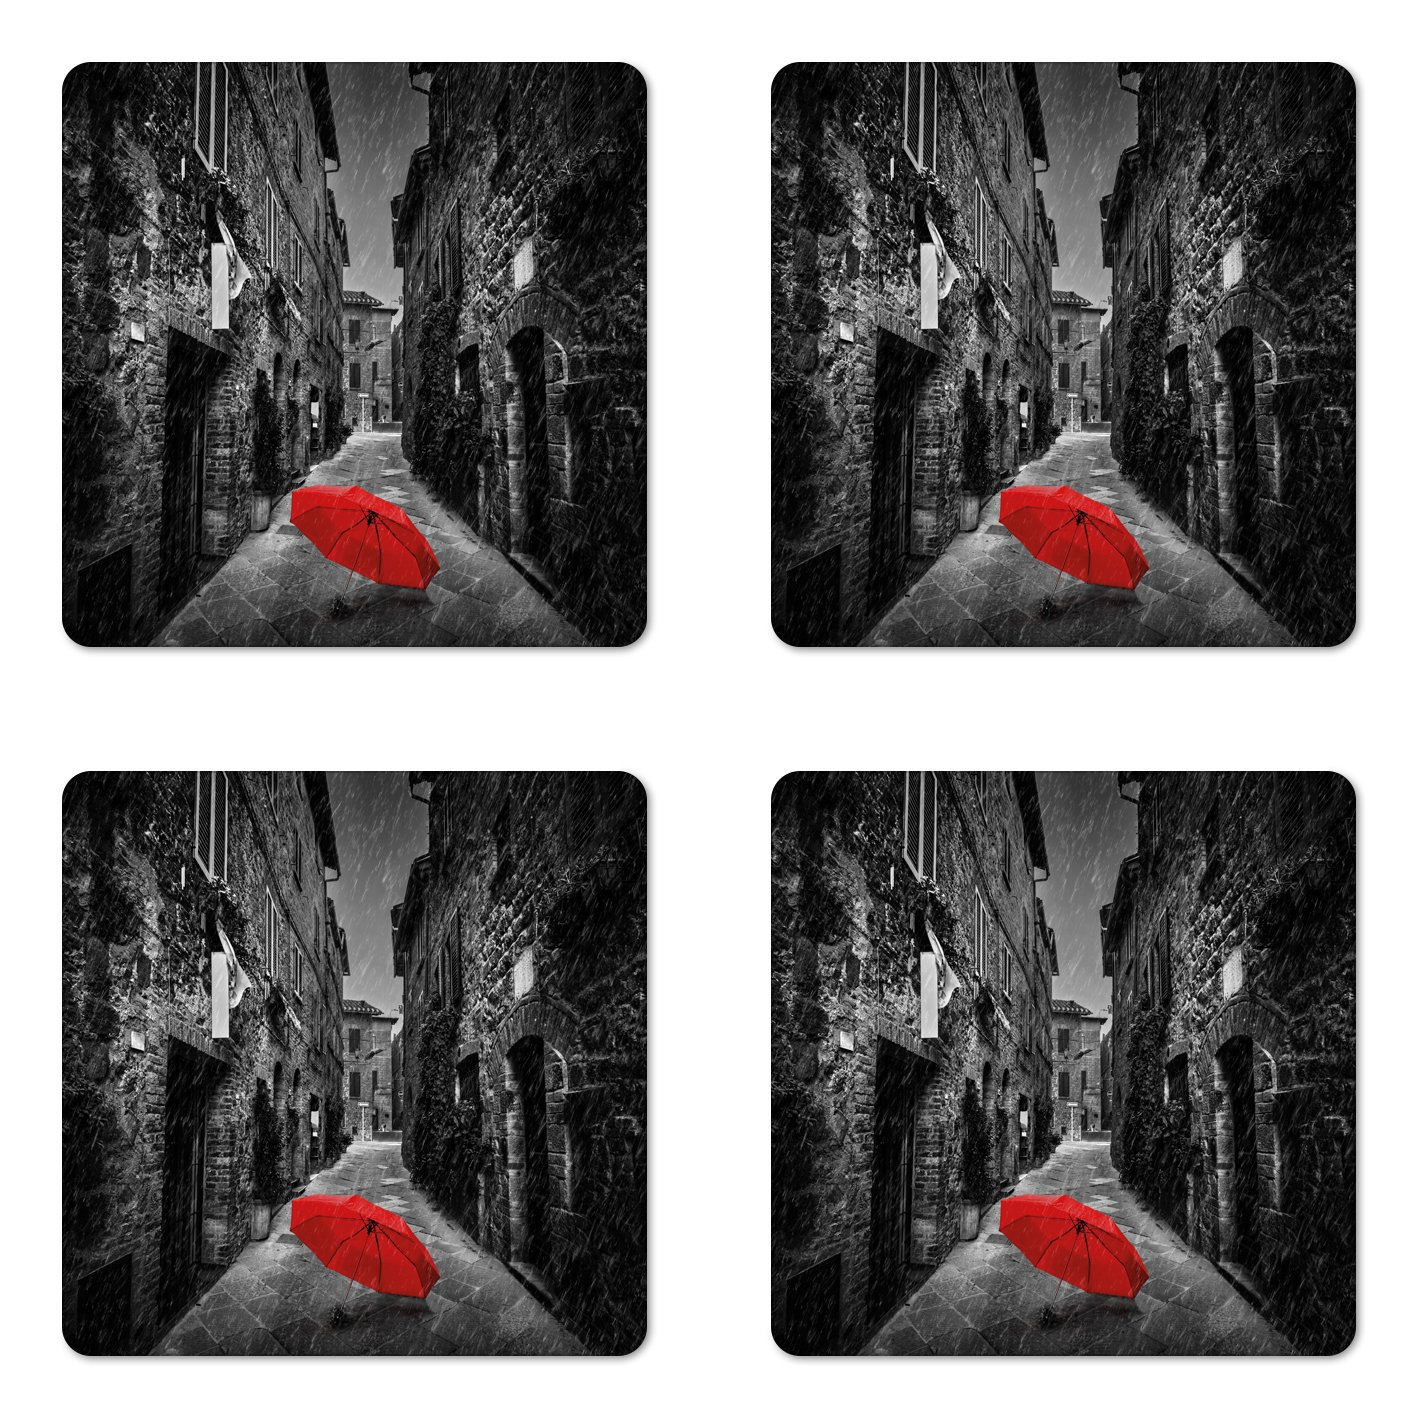 Ambesonne Black and White Coaster Set of Four, Red Umbrella on a Dark Narrow Street in Tuscany Italy Rainy Winter, Square Hardboard Gloss Coasters for Drinks, Grey Vermilion